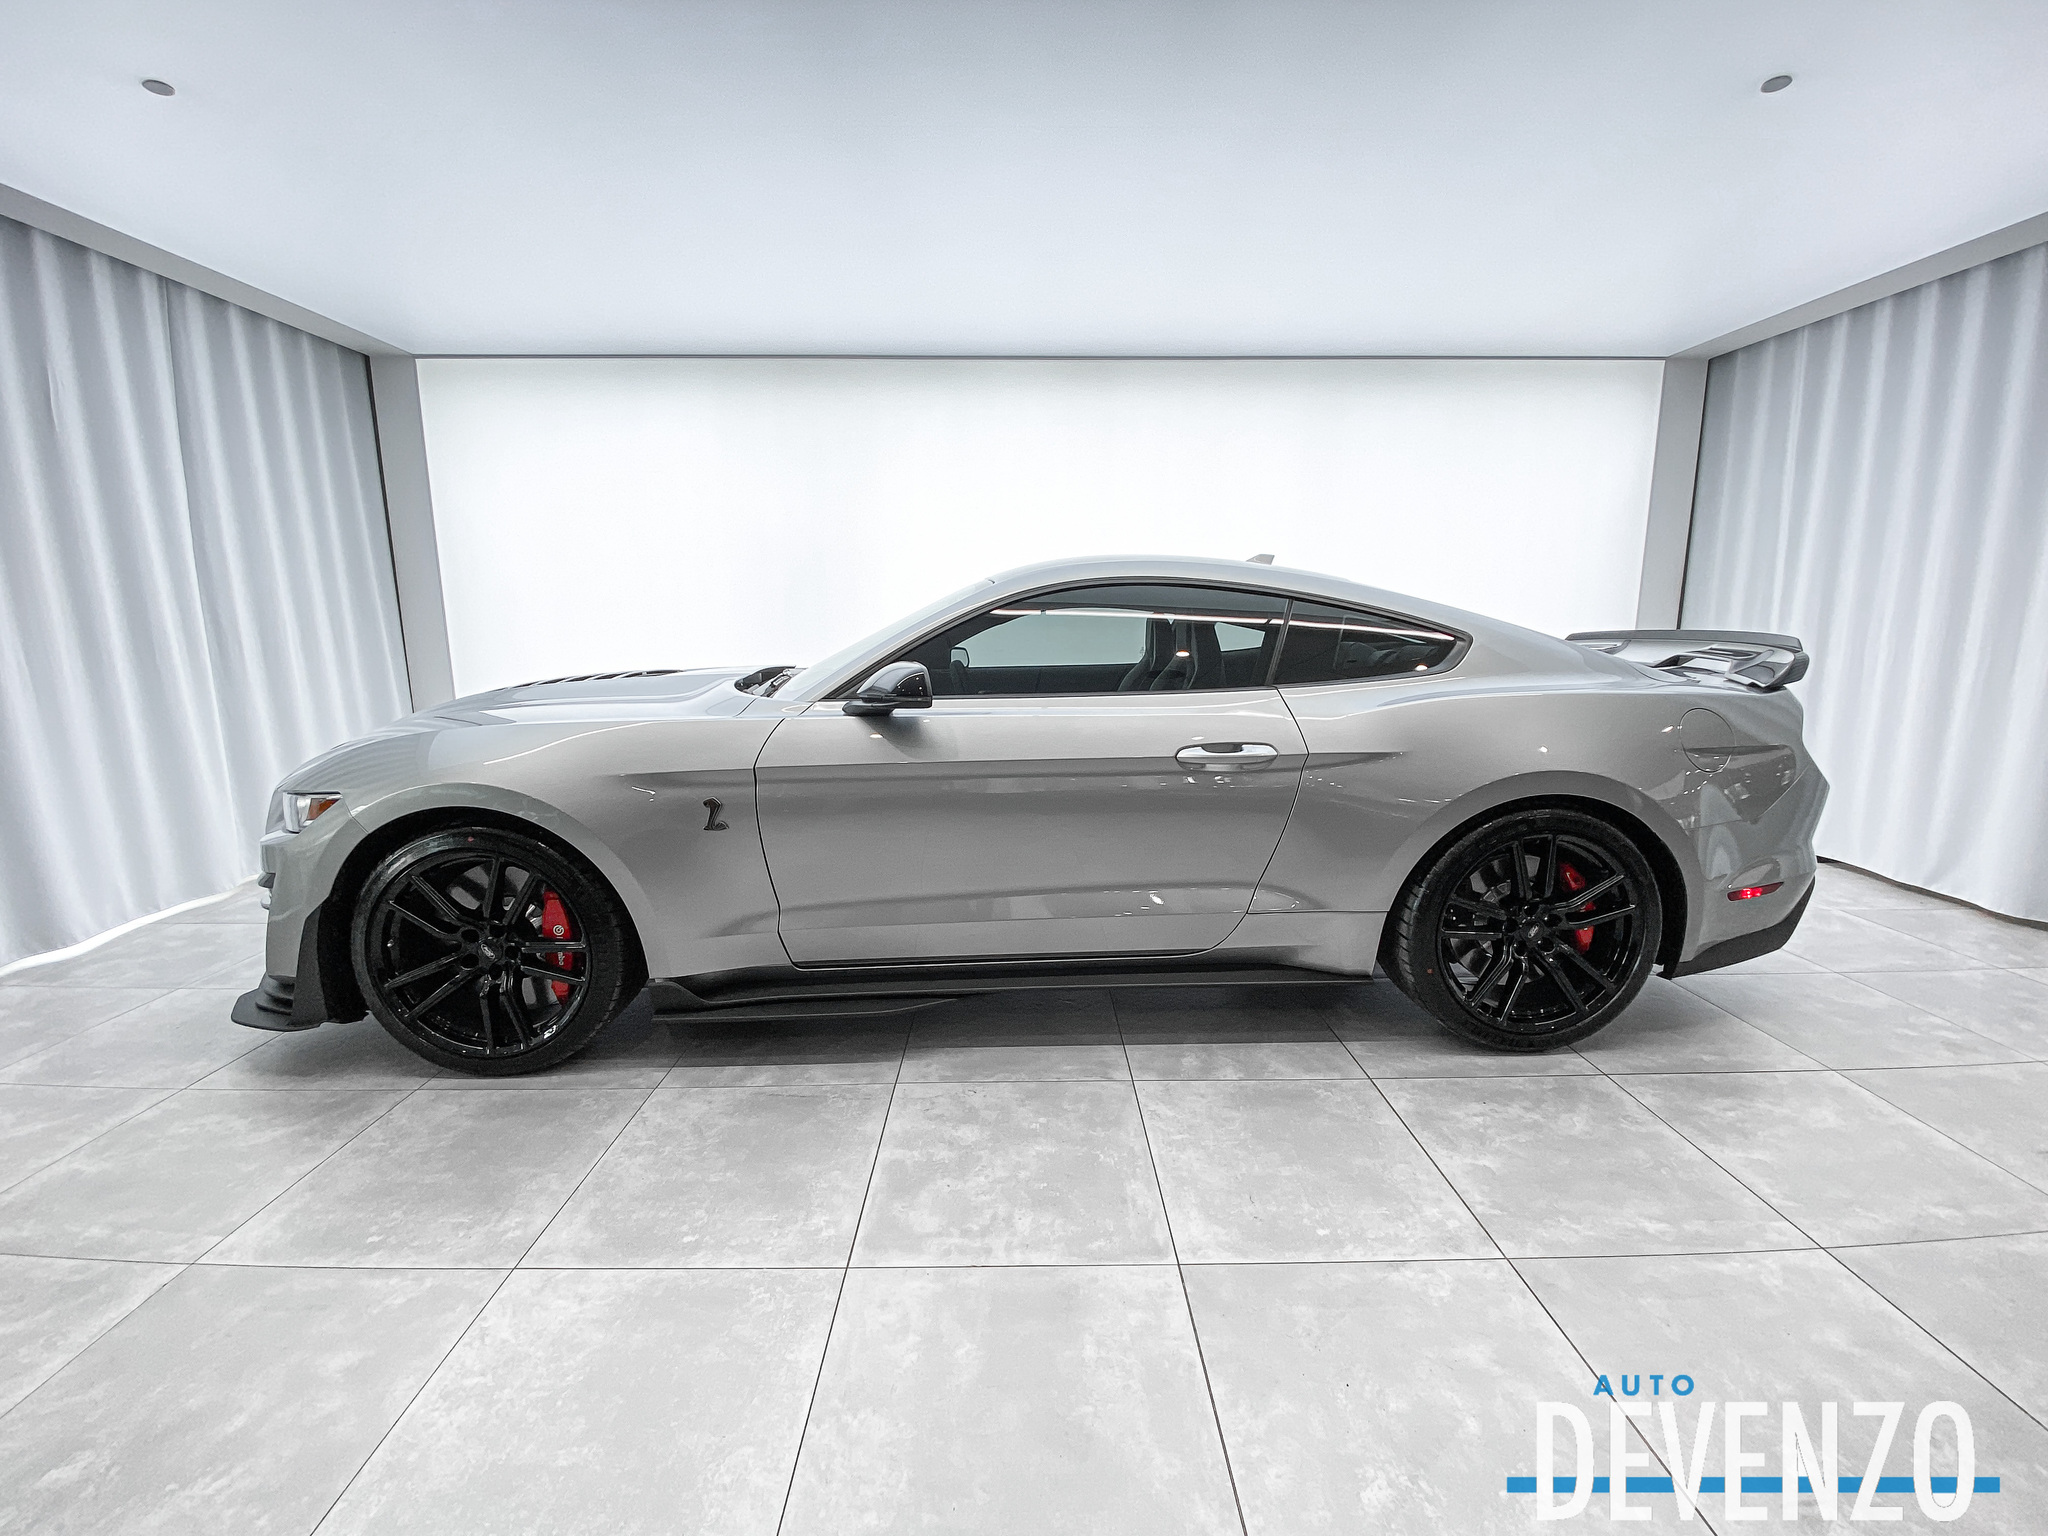 2020 Ford Mustang Shelby GT500 Fastback 760hp Recaro / Tech Pack complet